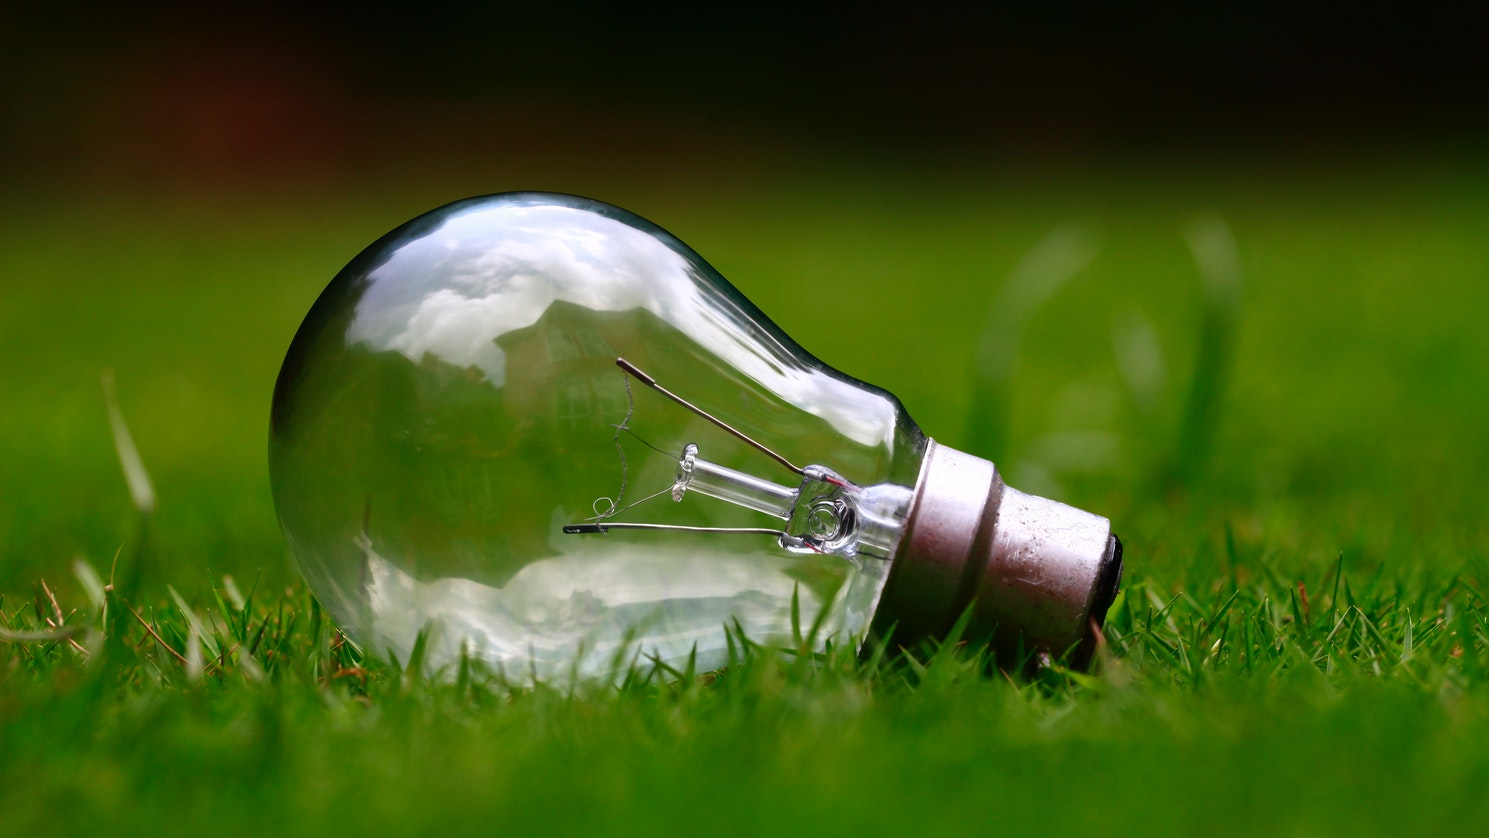 A lightbulb sitting in grass.